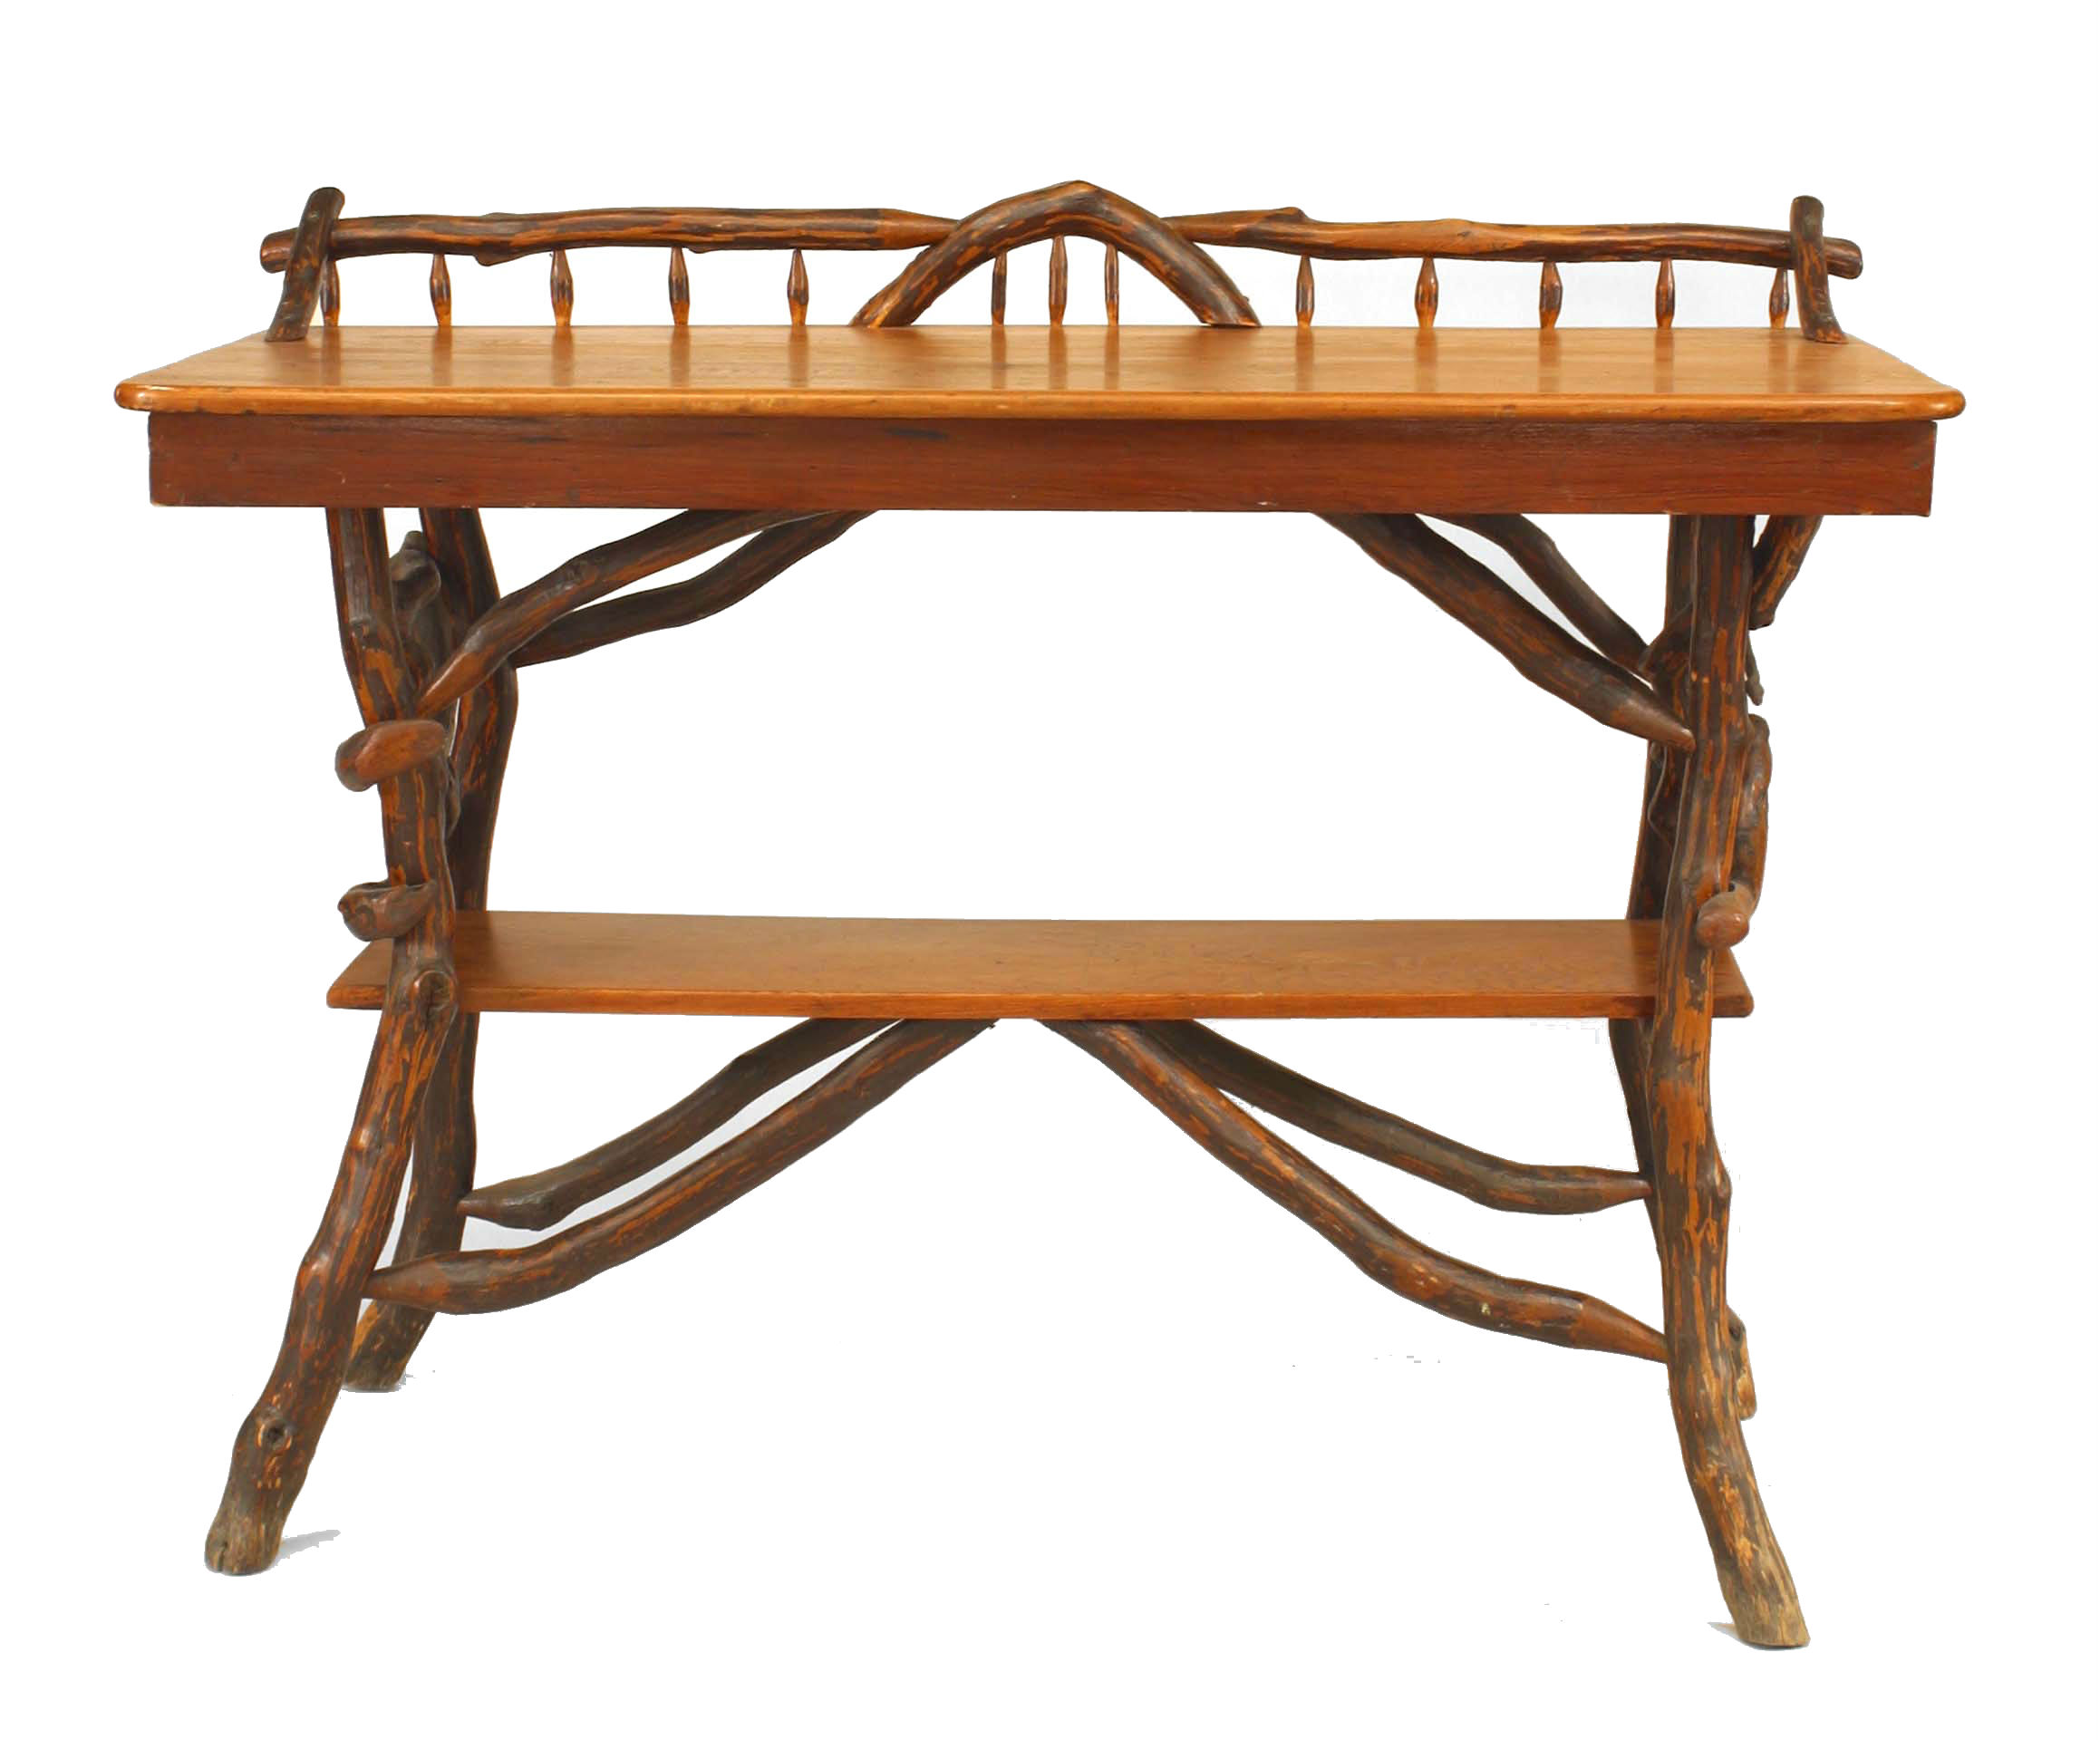 Rustic Adirondack Twig and Pine Console Table